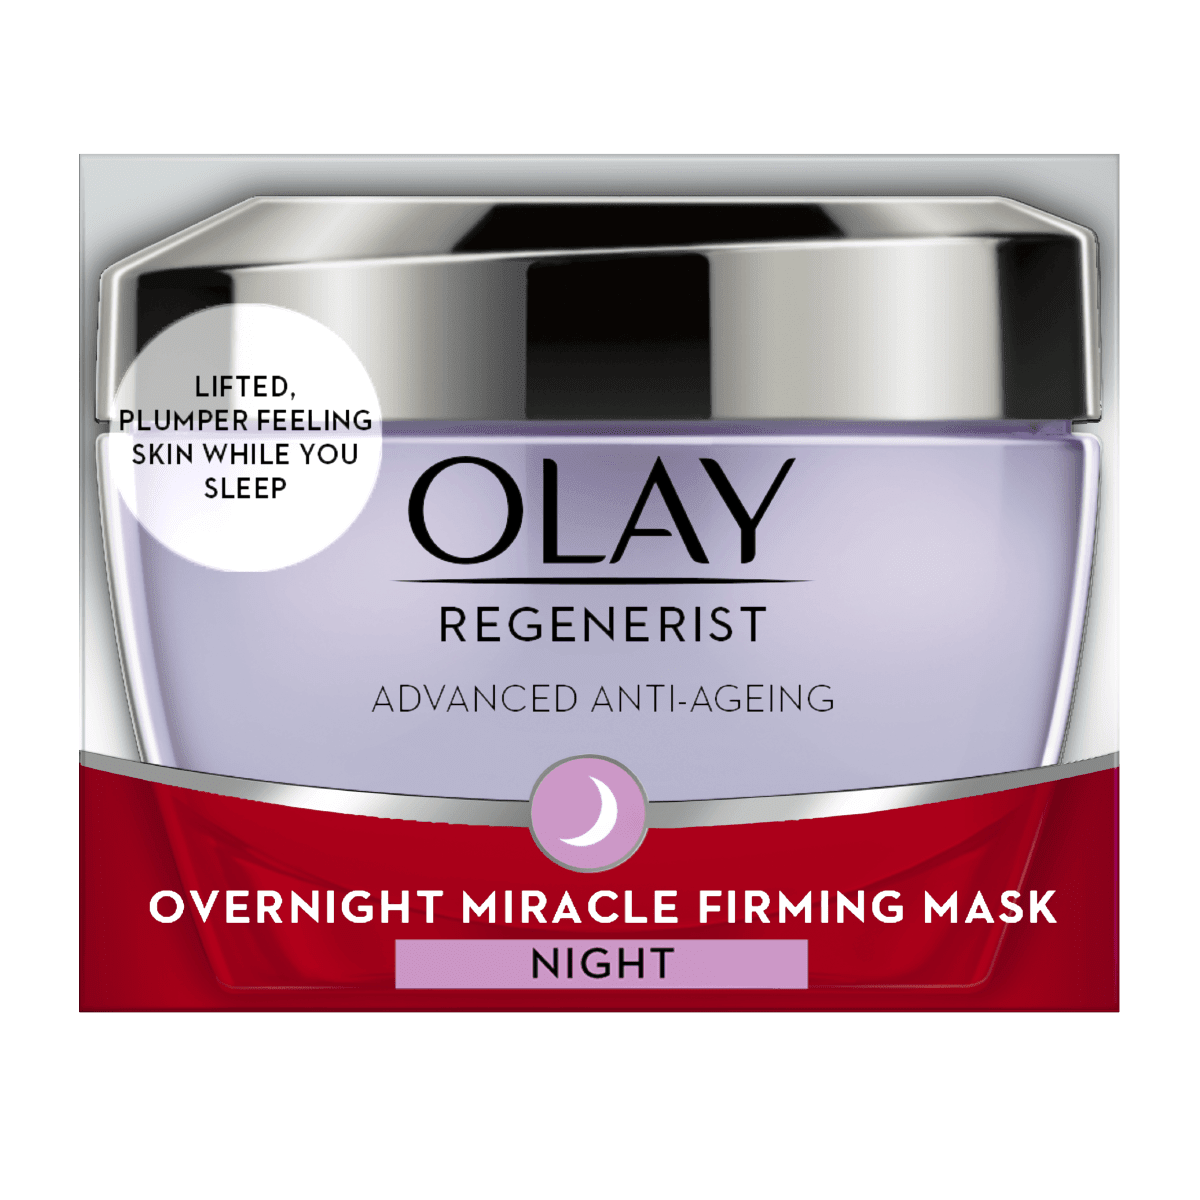 Olay Regenerist Overnight Miracle Firming Mask